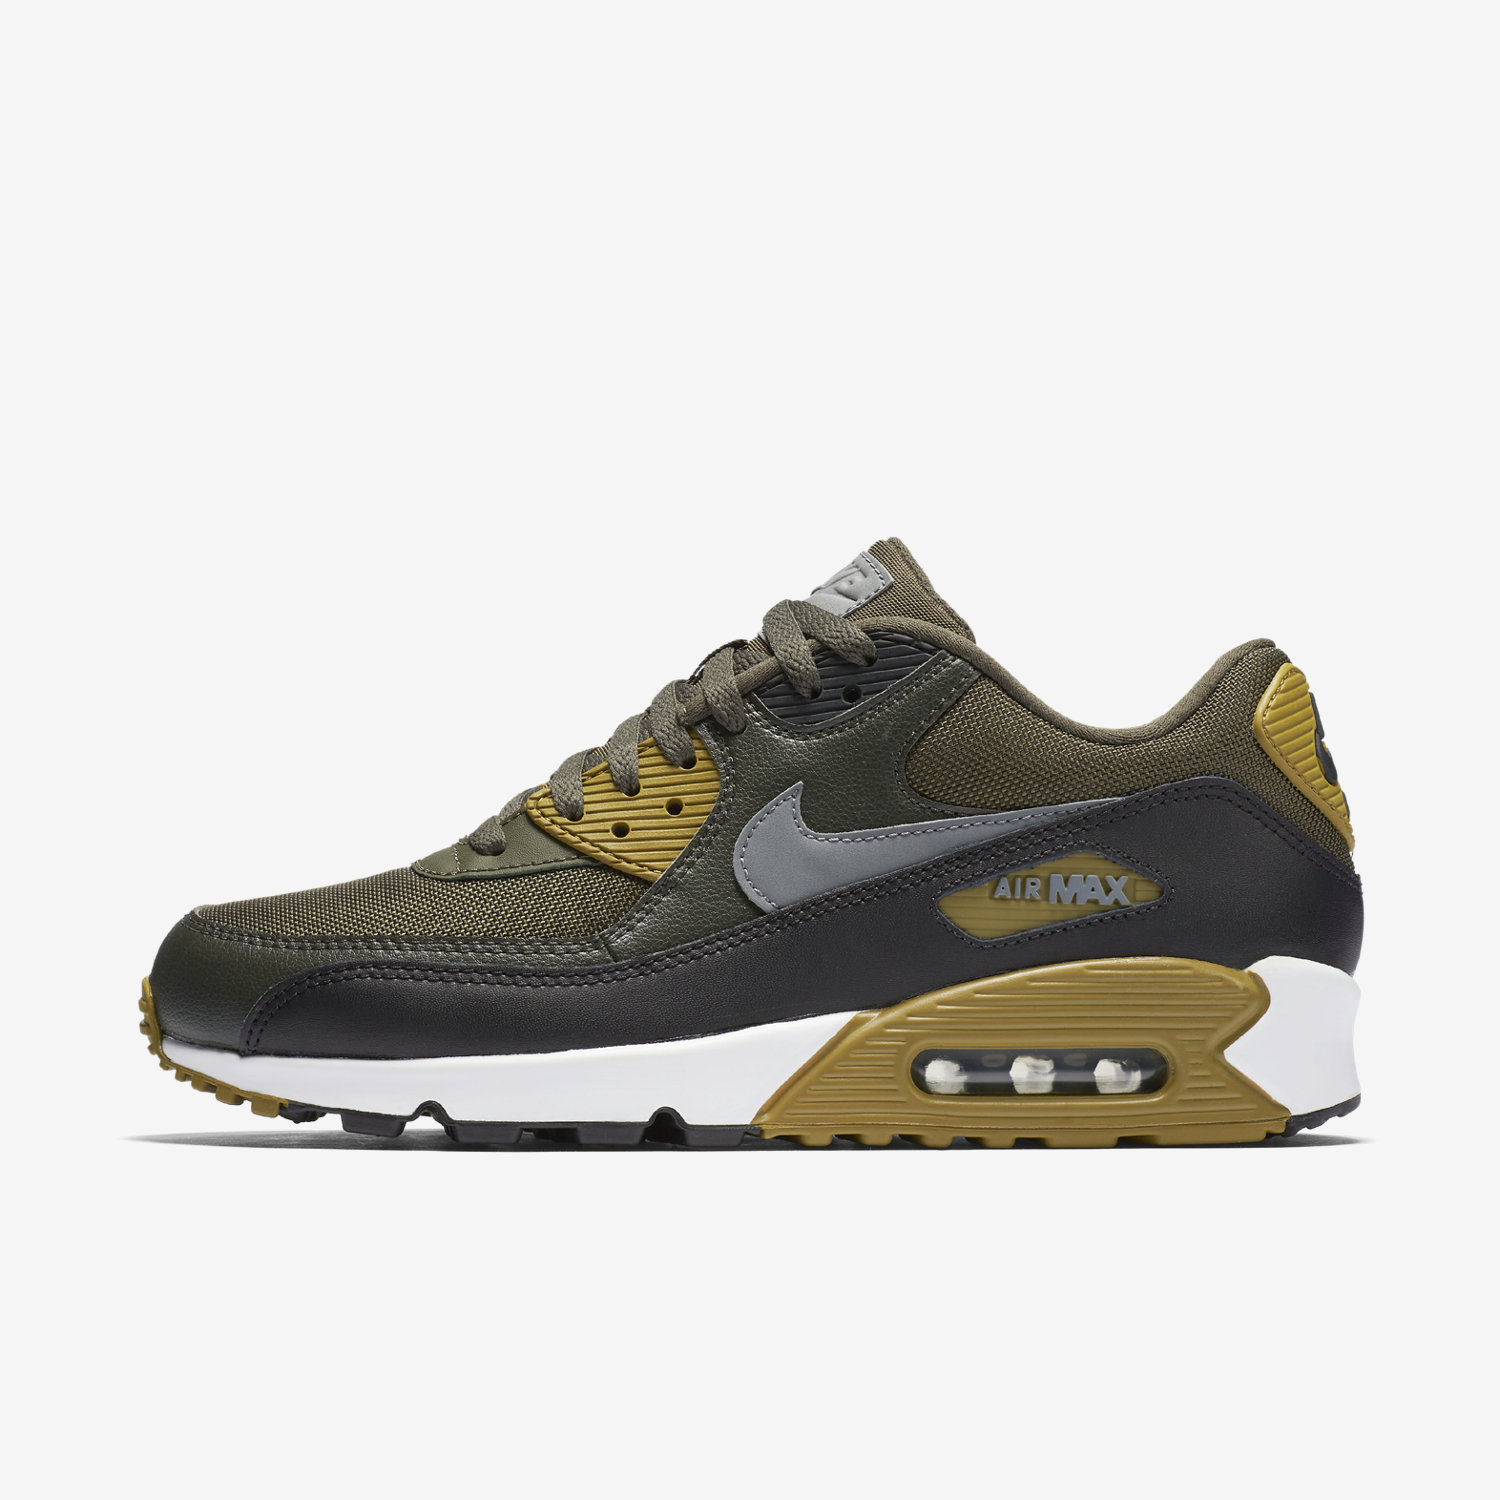 nike air max 90 schwarz wei stitching. Black Bedroom Furniture Sets. Home Design Ideas